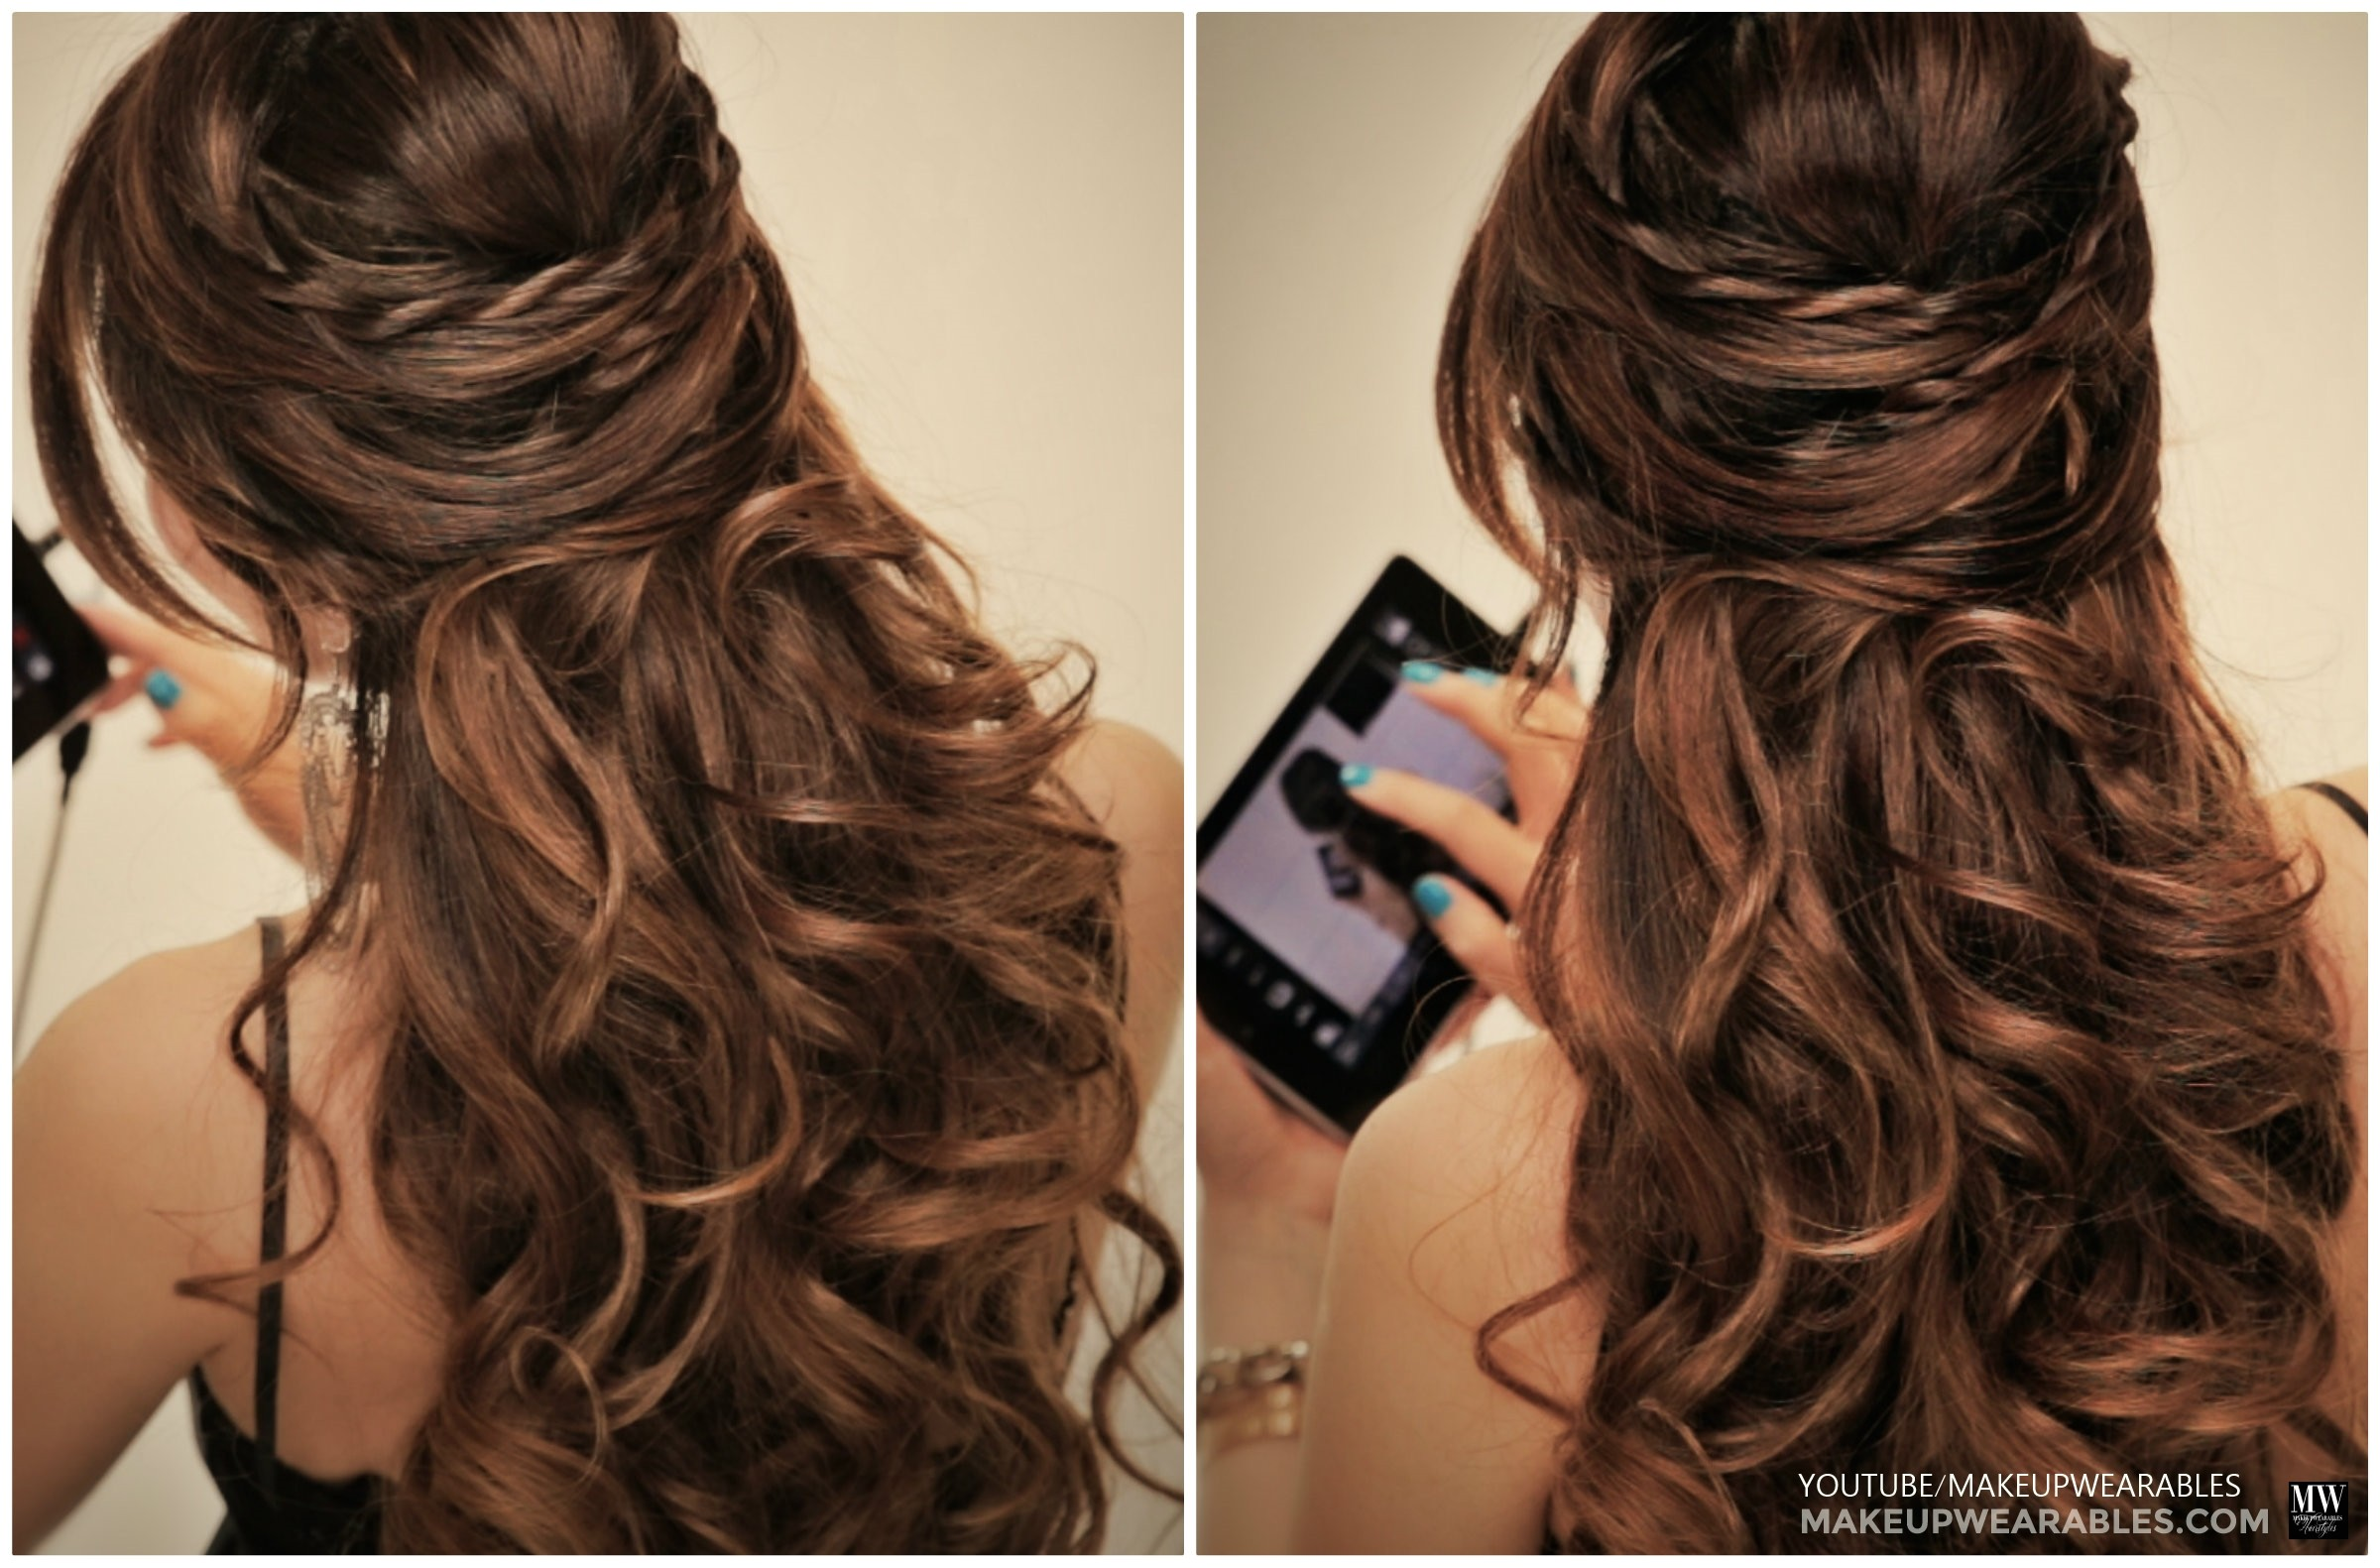 5 easy hairstyles for everyday